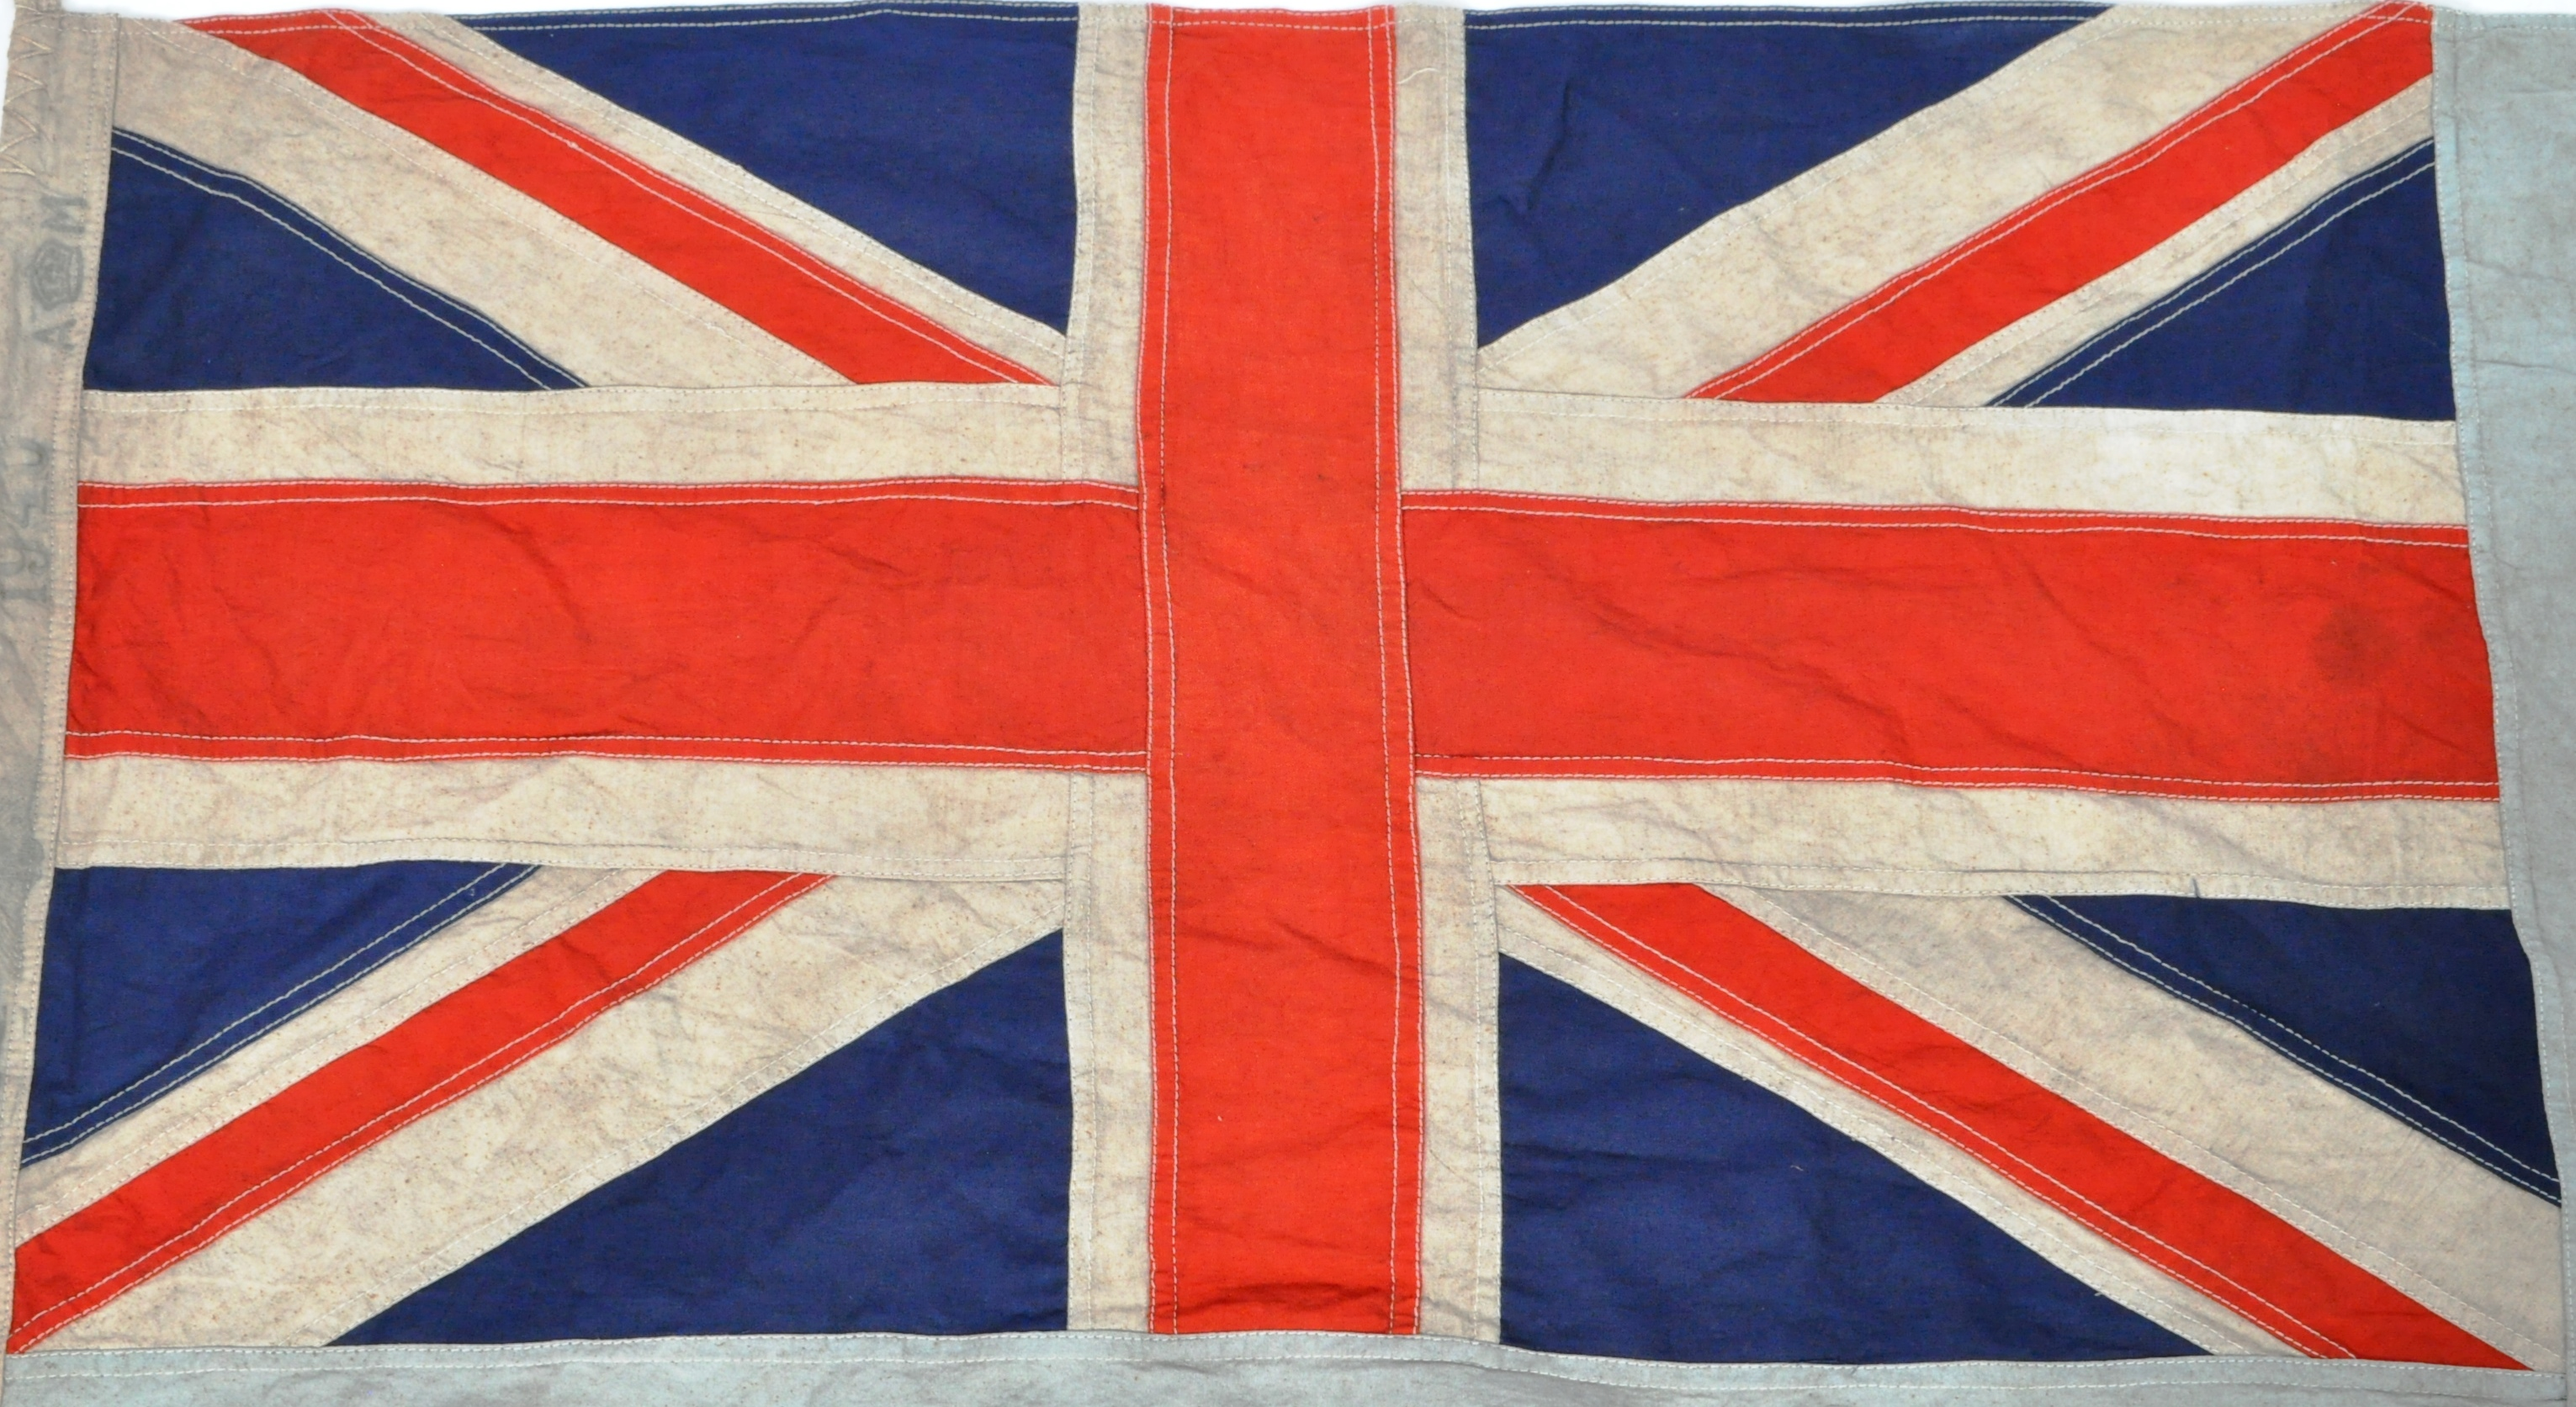 WWII SECOND WORLD WAR TYPE RAF AIRFIELD FLAG - DEBDEN - Image 3 of 8